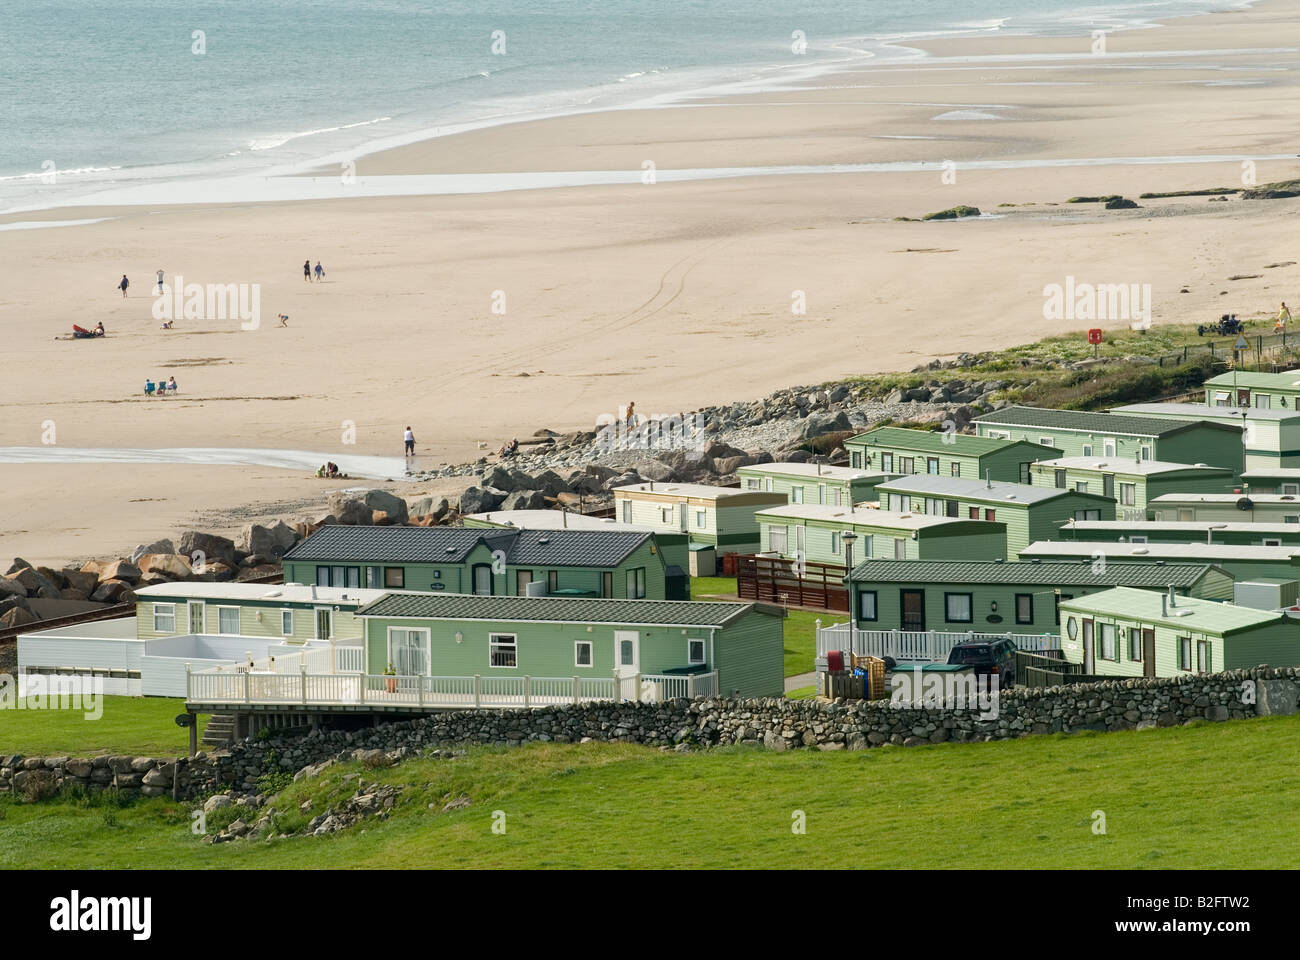 Permanent holiday home caravan park Barmouth Gwynedd UK Seaside resort west coast of North Wales HOMER SYKES - Stock Image